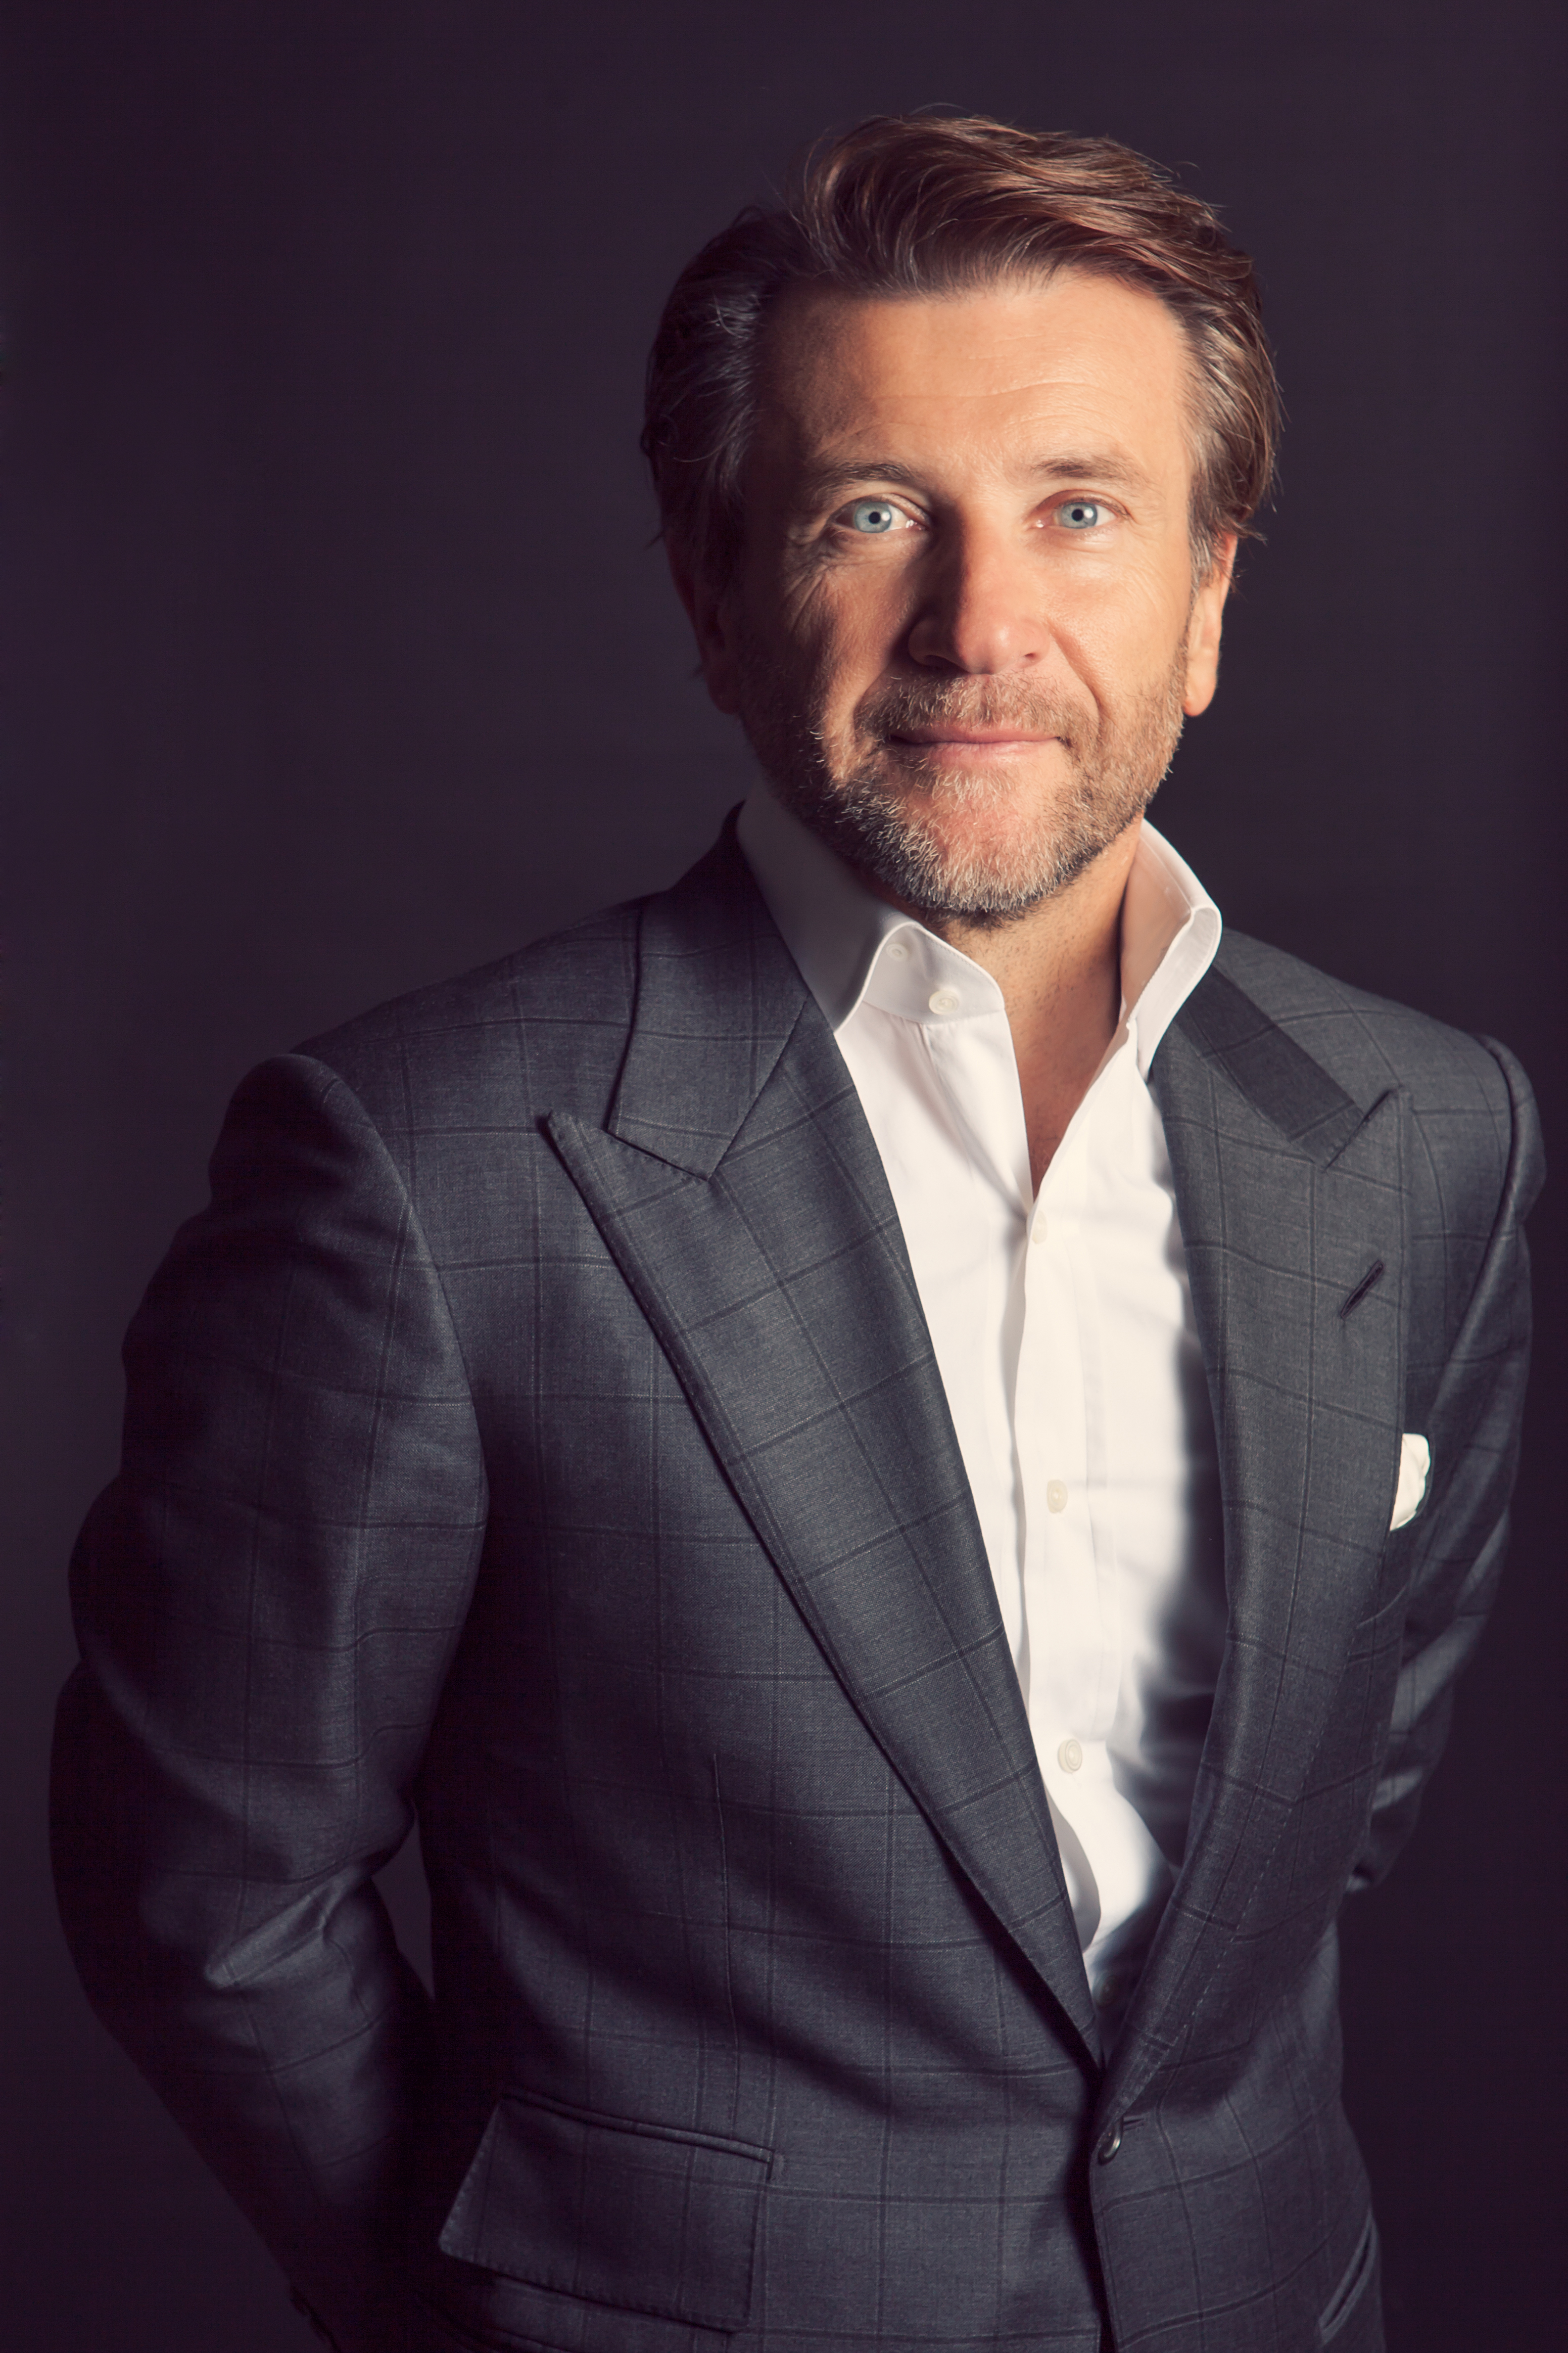 Robert Herjavec, founder of Herjavec Group